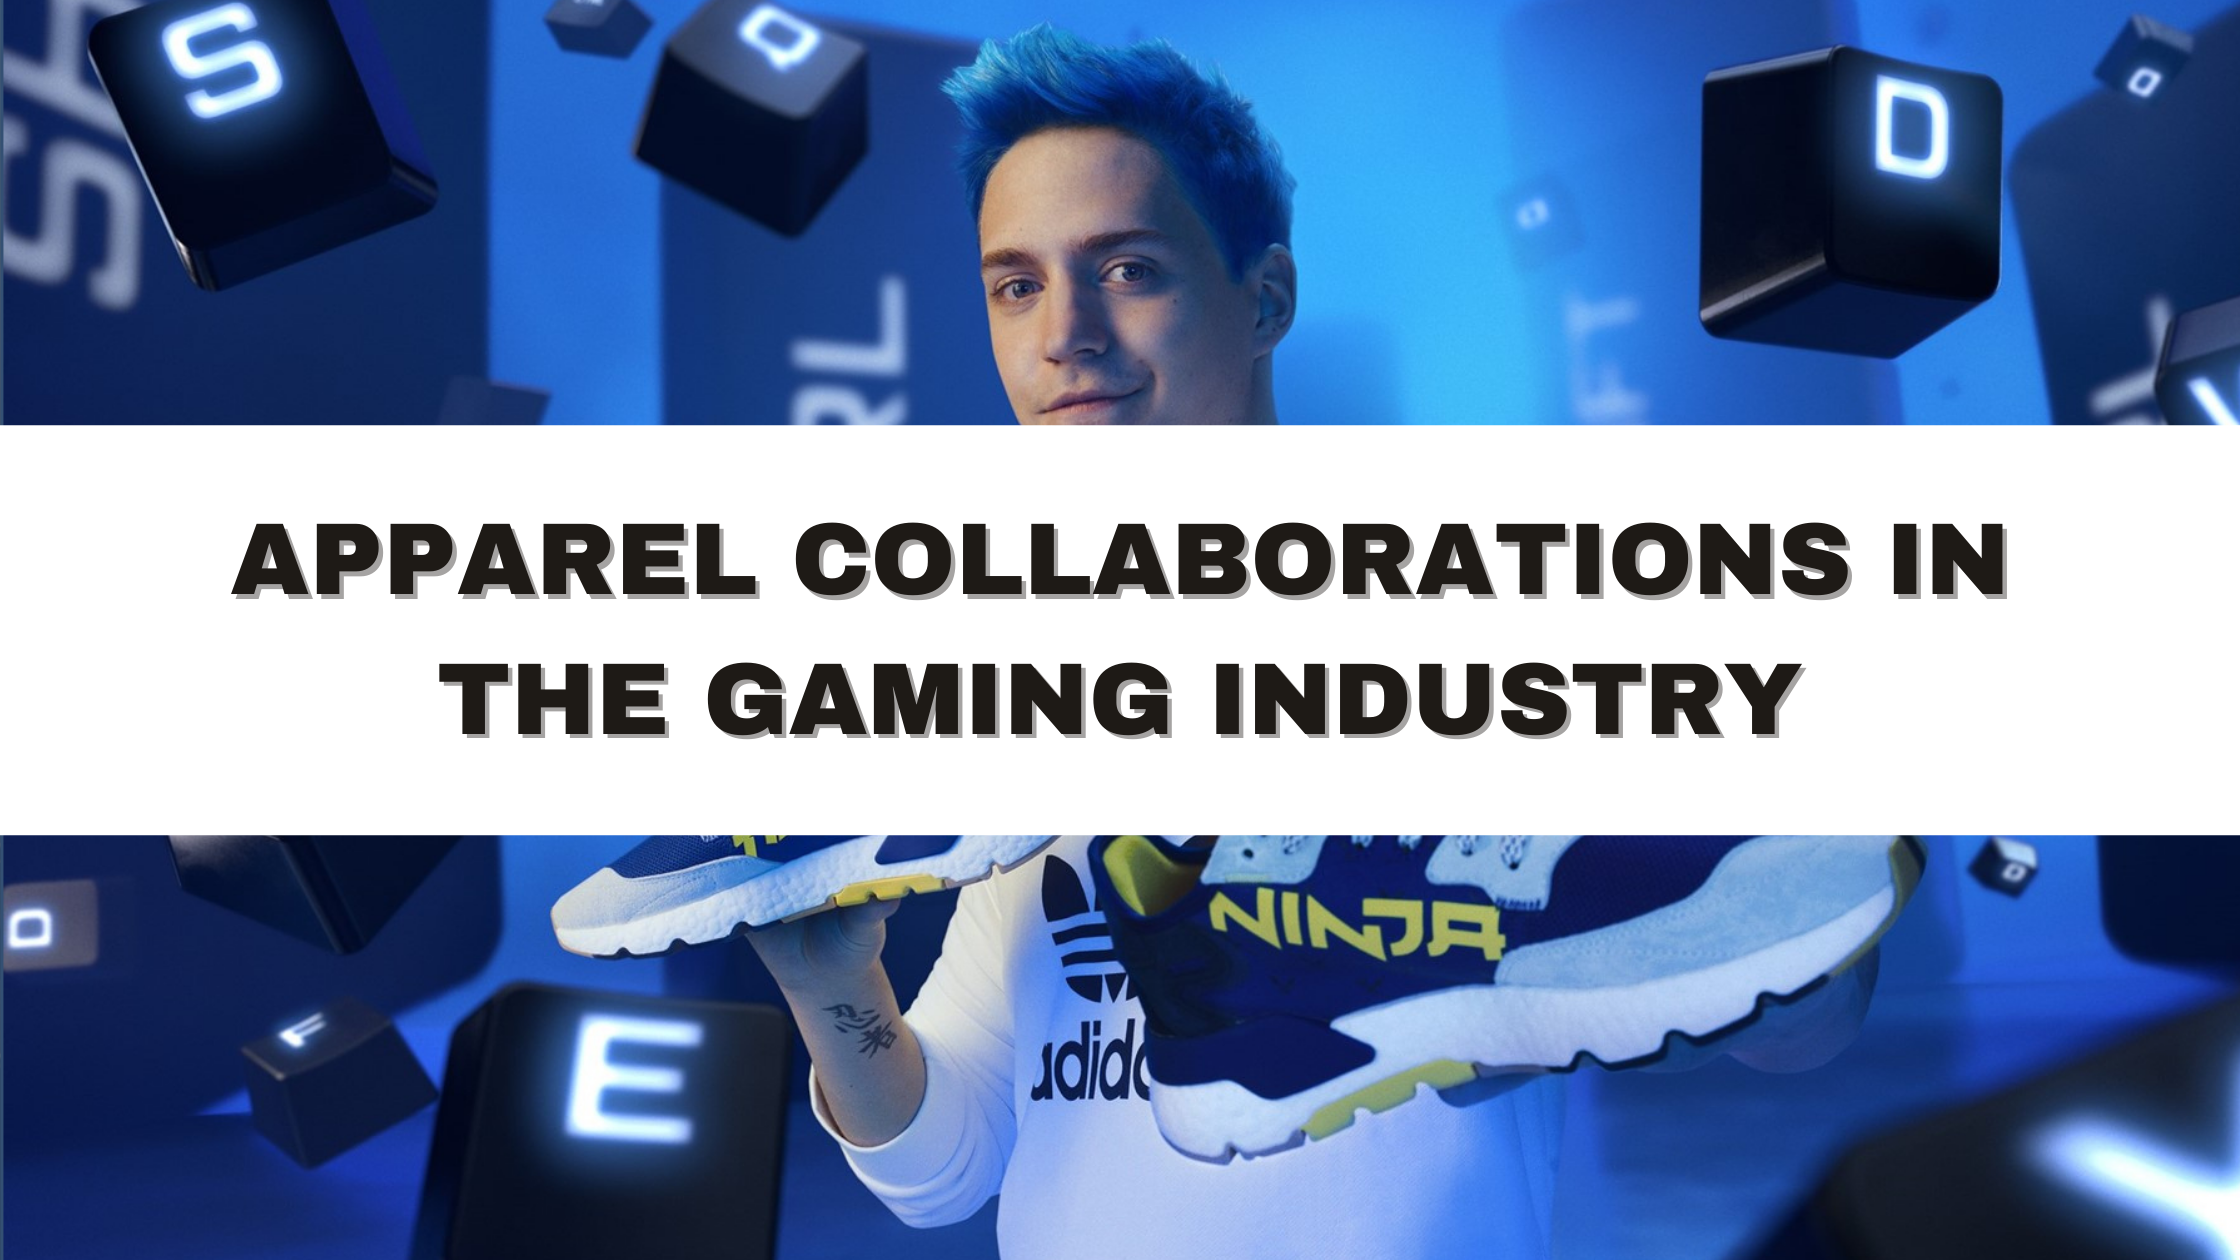 Apparel Collaborations in the Gaming Industry